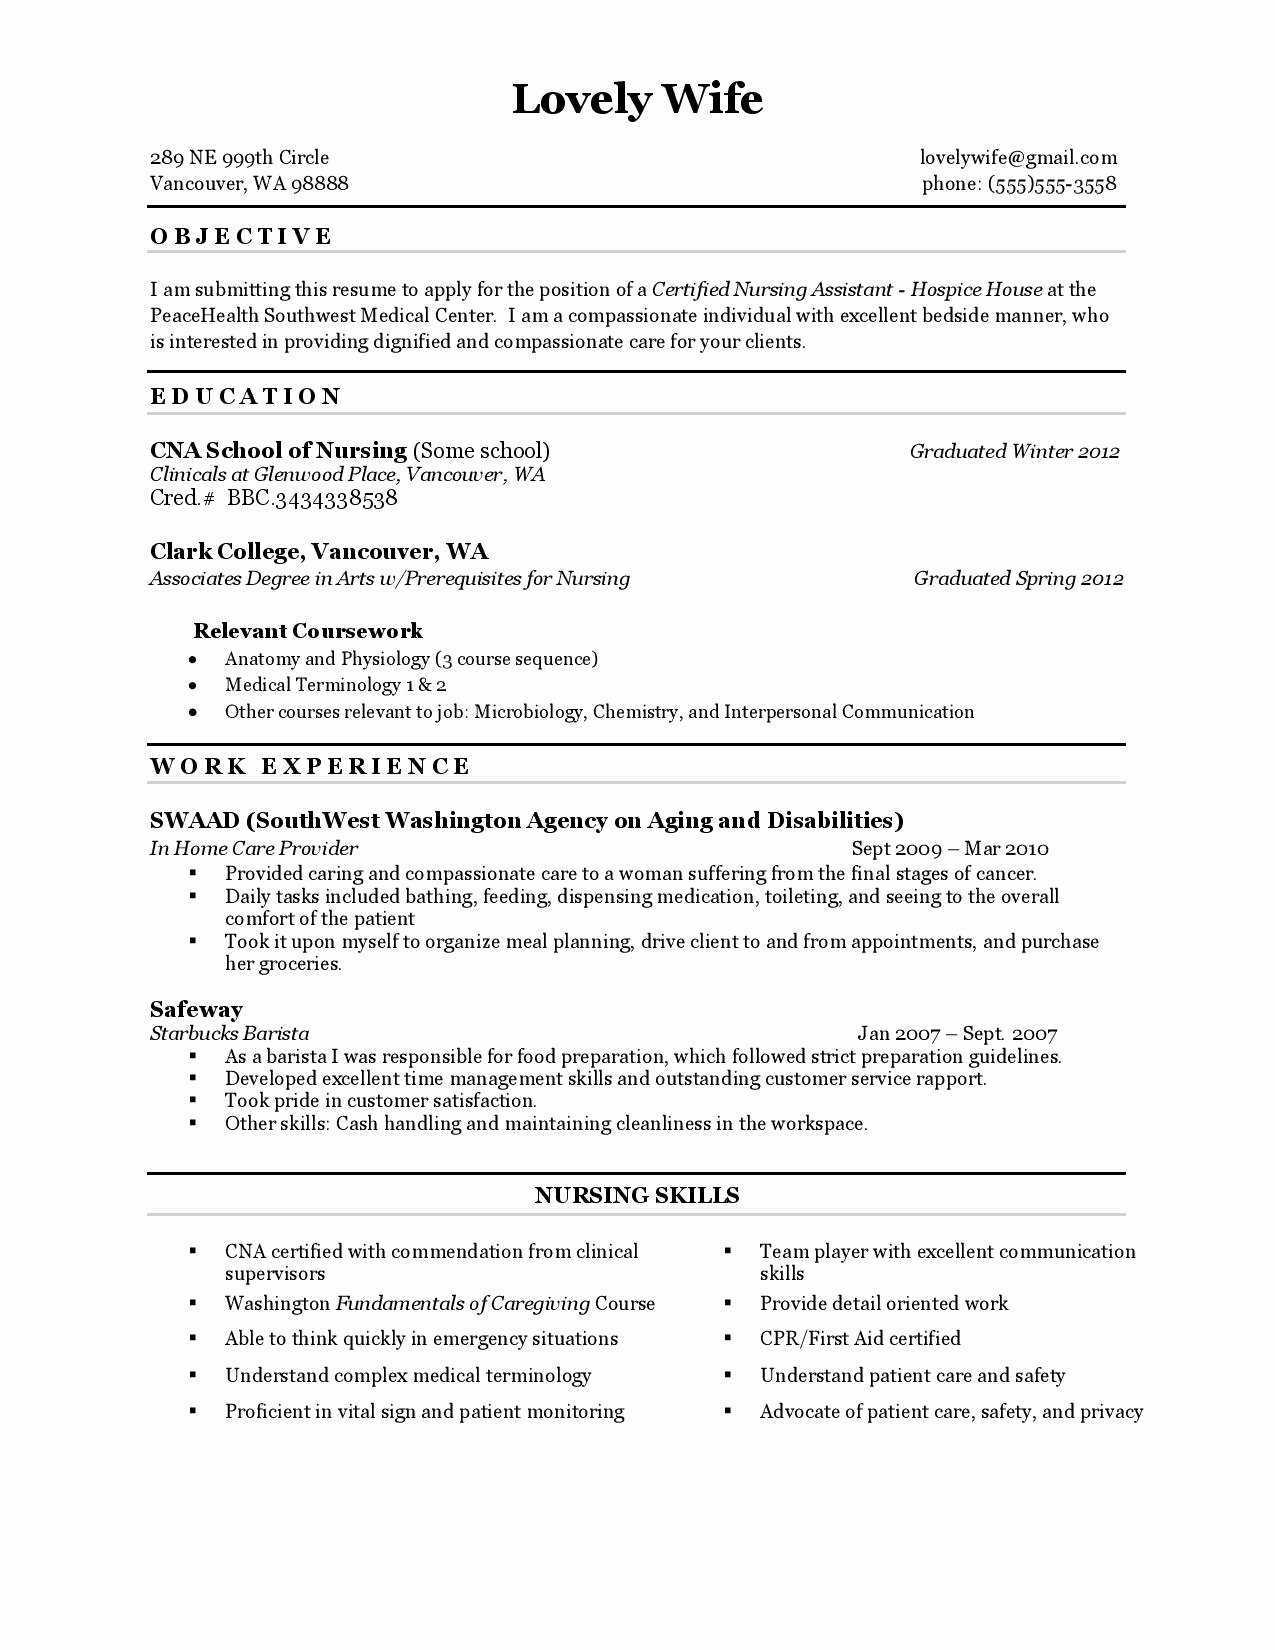 Sample Resume to Apply for the Position Certified